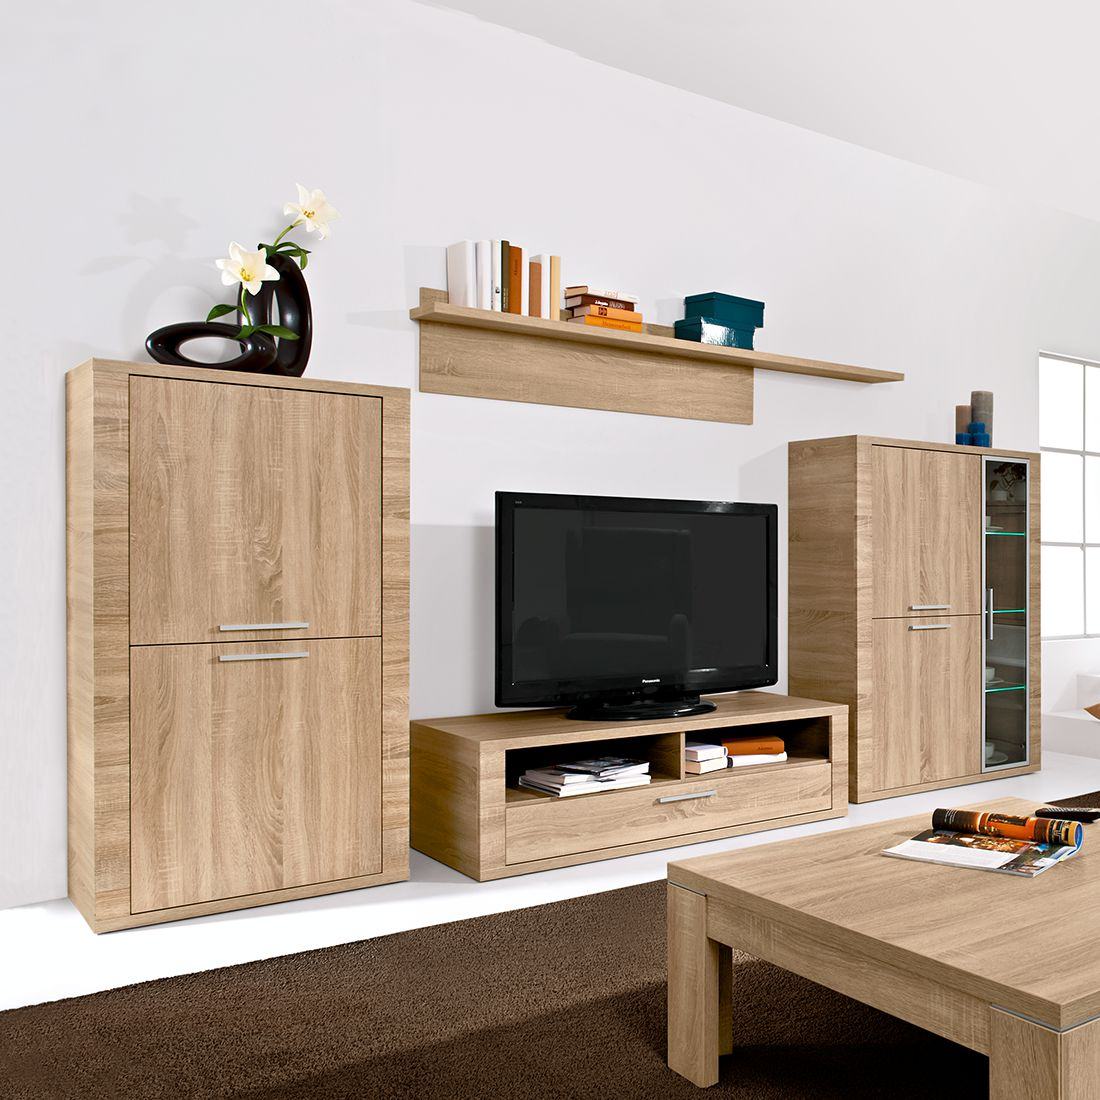 wohnwand cool 4 teilig 326cm breit eiche dekor. Black Bedroom Furniture Sets. Home Design Ideas